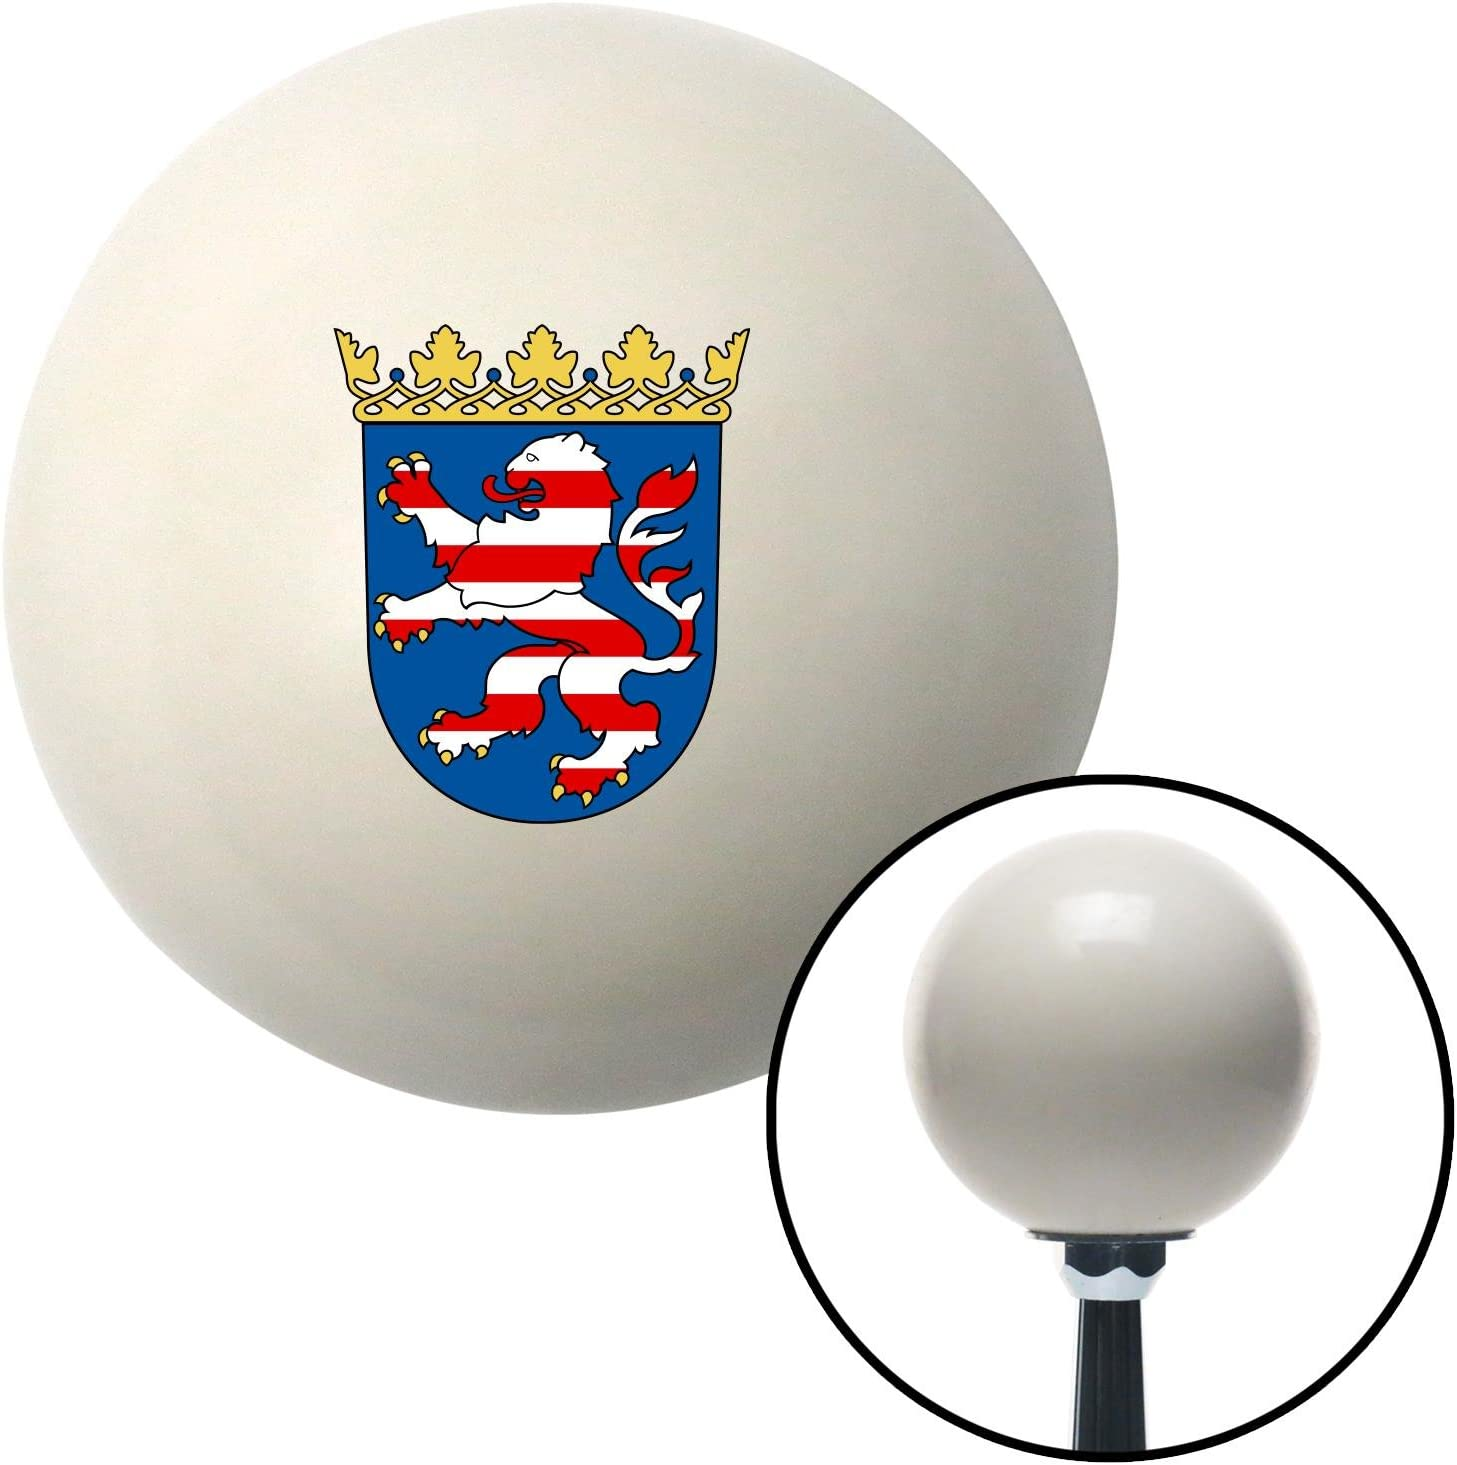 Hesse Coat of Arms American Shifter 76113 Ivory Shift Knob with M16 x 1.5 Insert